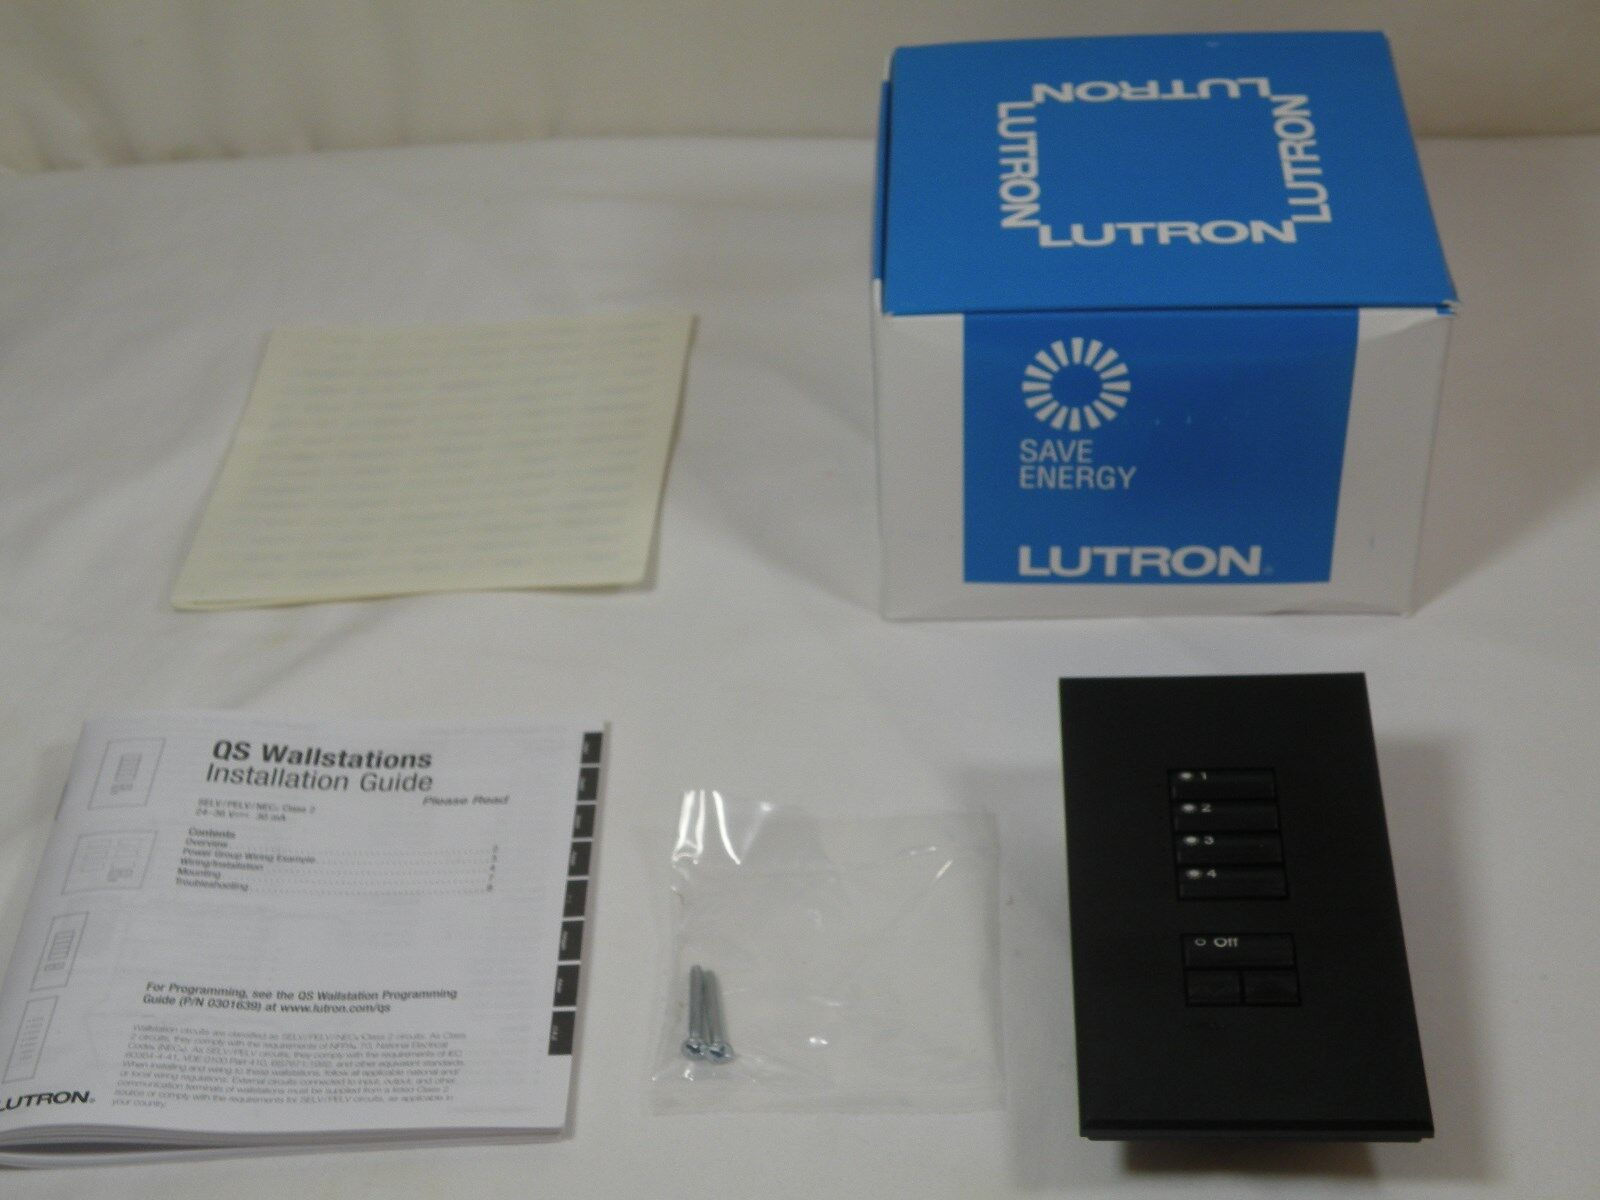 LUTRON SO-4SN, 4-Button Wallstation w/Off & Raise/Lower Buttons, Black, 36V